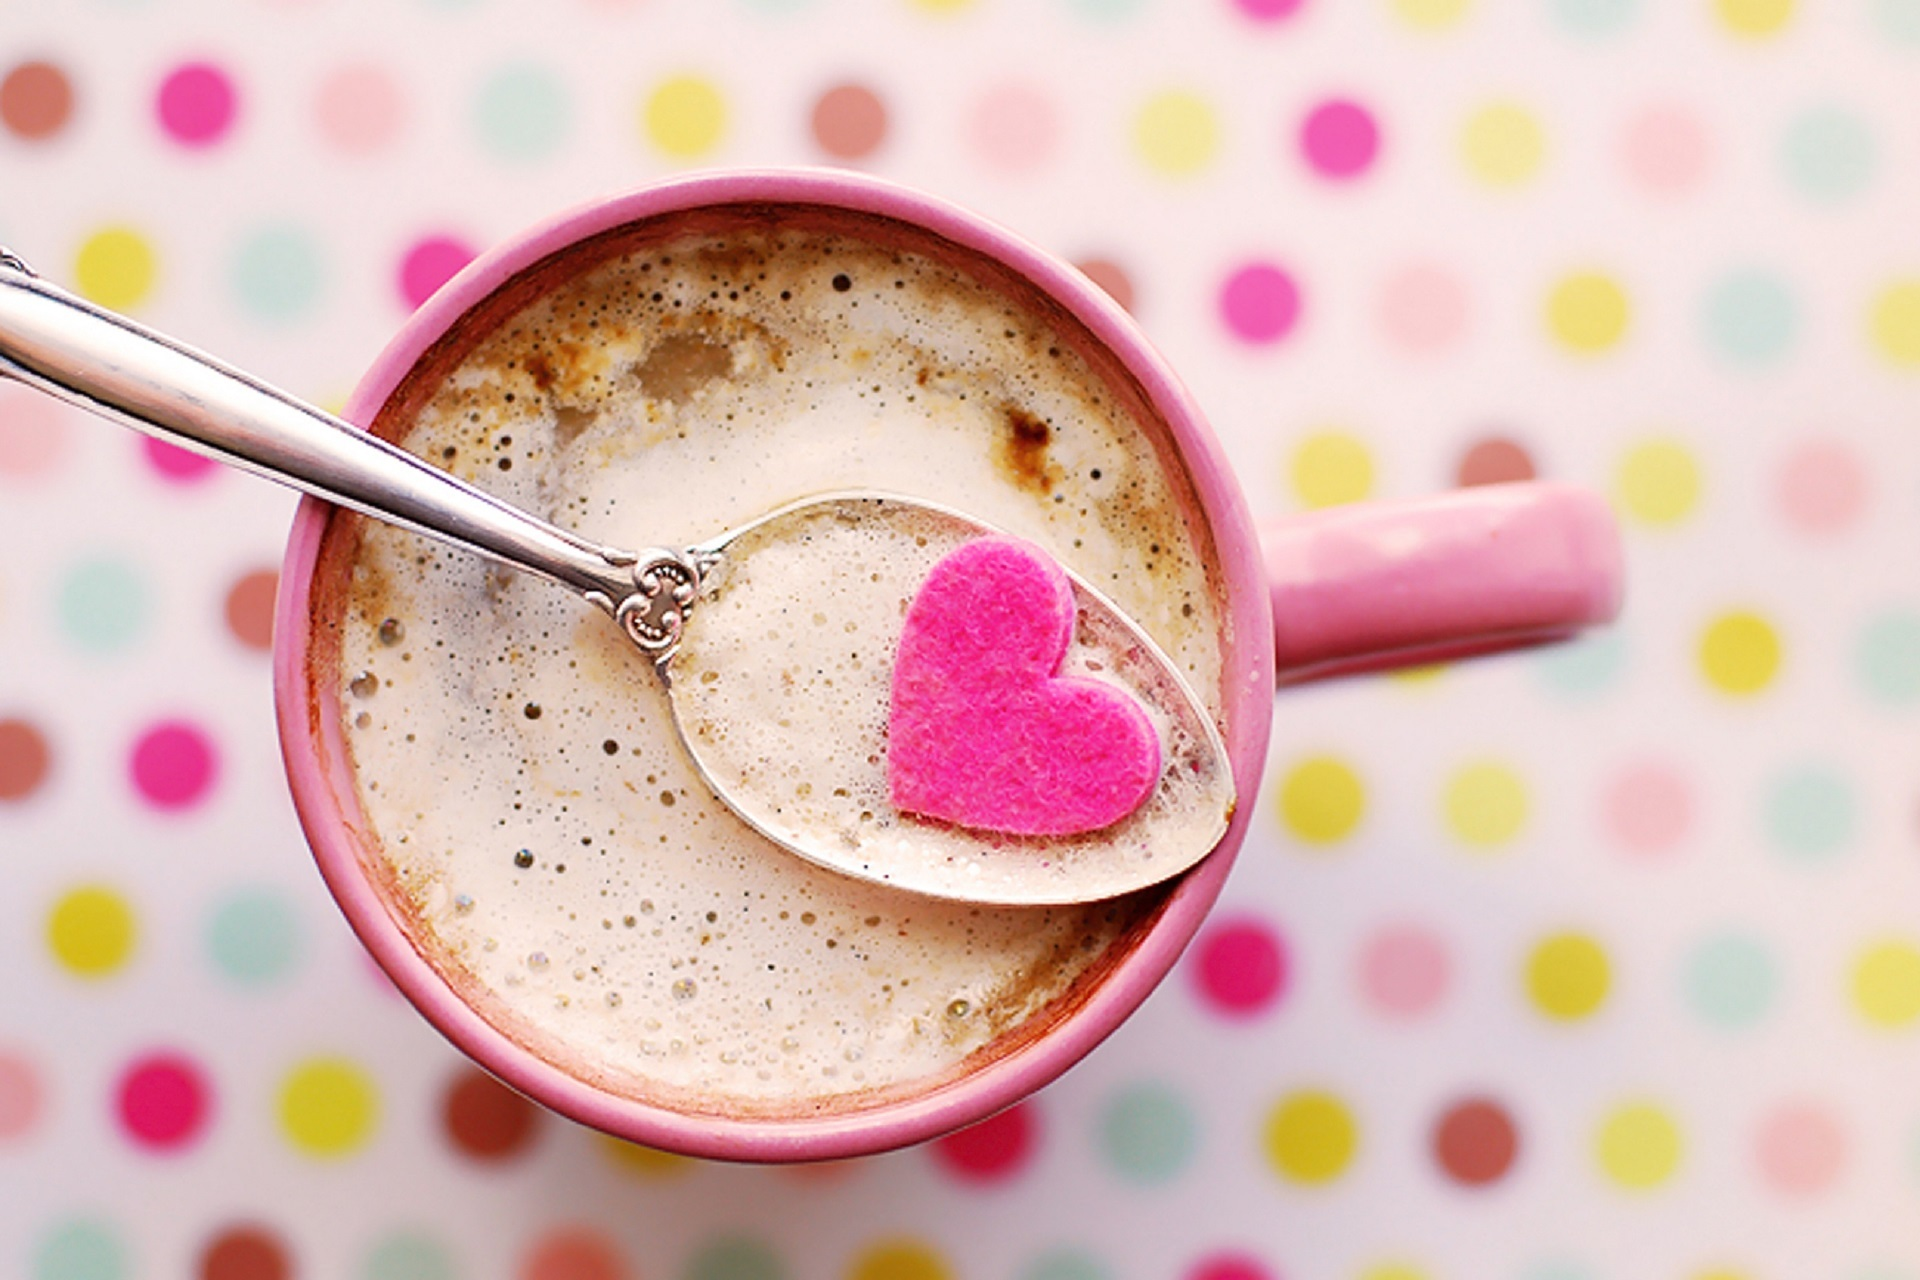 Image: Frothy coffee with heart on a spoon